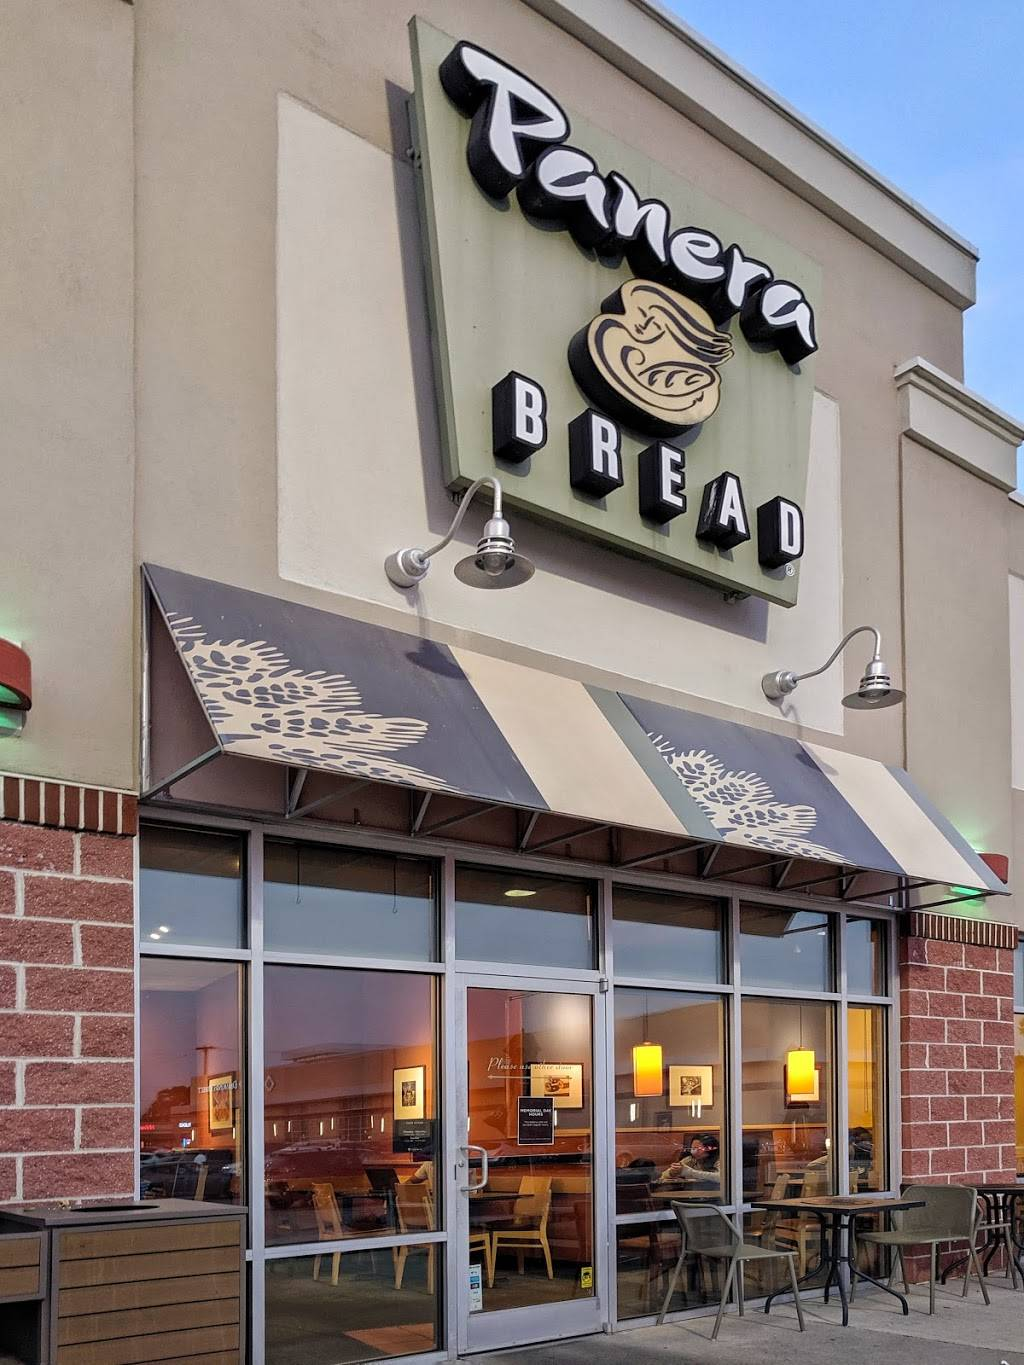 Panera Bread | bakery | 300 Constitution Dr Ste. 101, Virginia Beach, VA 23462, USA | 7574991227 OR +1 757-499-1227